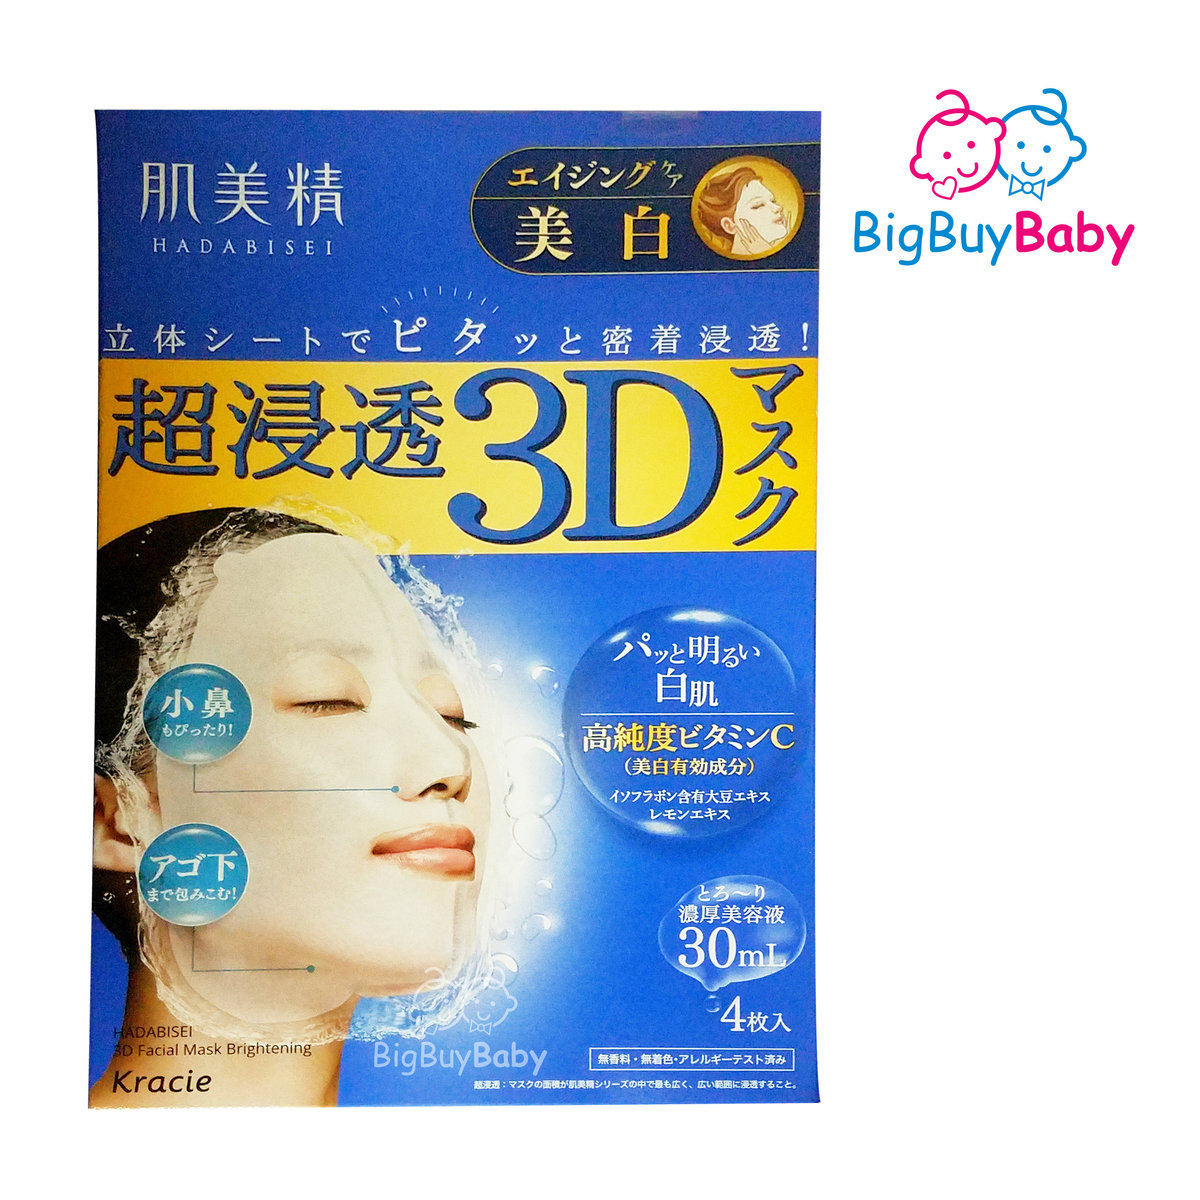 Advanced Penetrating 3D Face Mask (Aging-care Brightening)